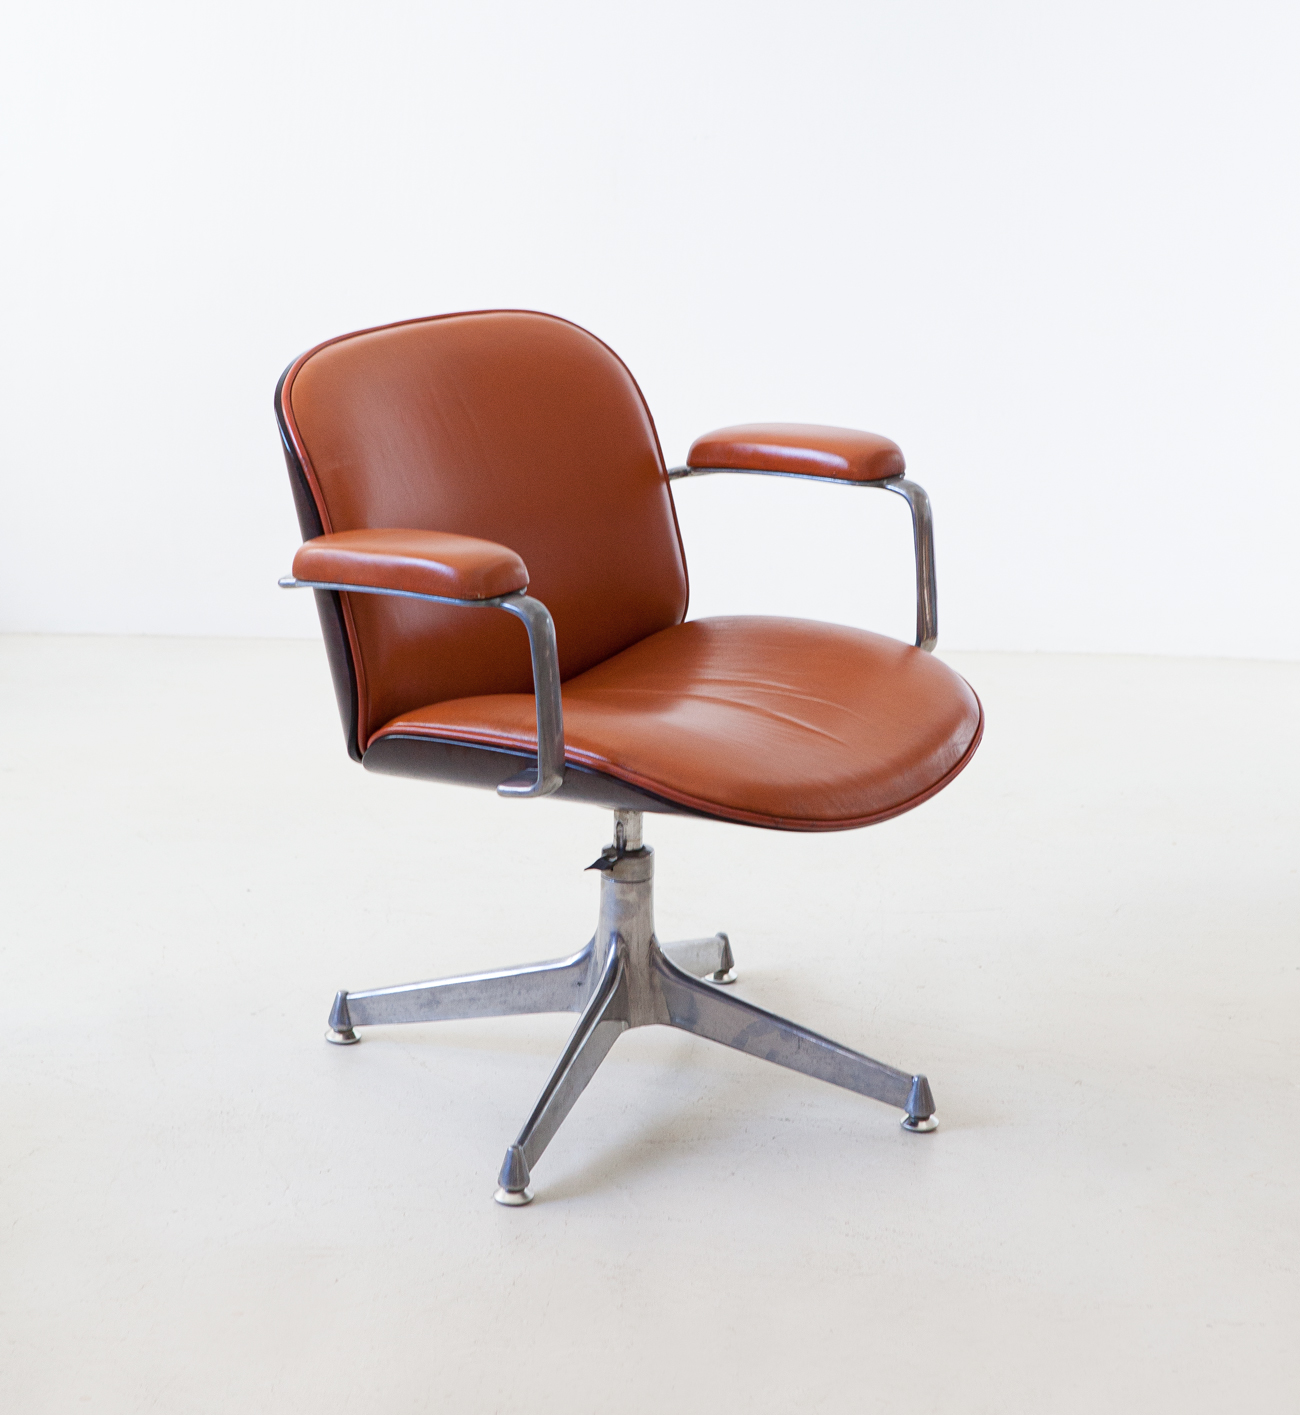 1950s-cognac-leather-swivel-chair-by-ico-parisi-for-mim-1-se333